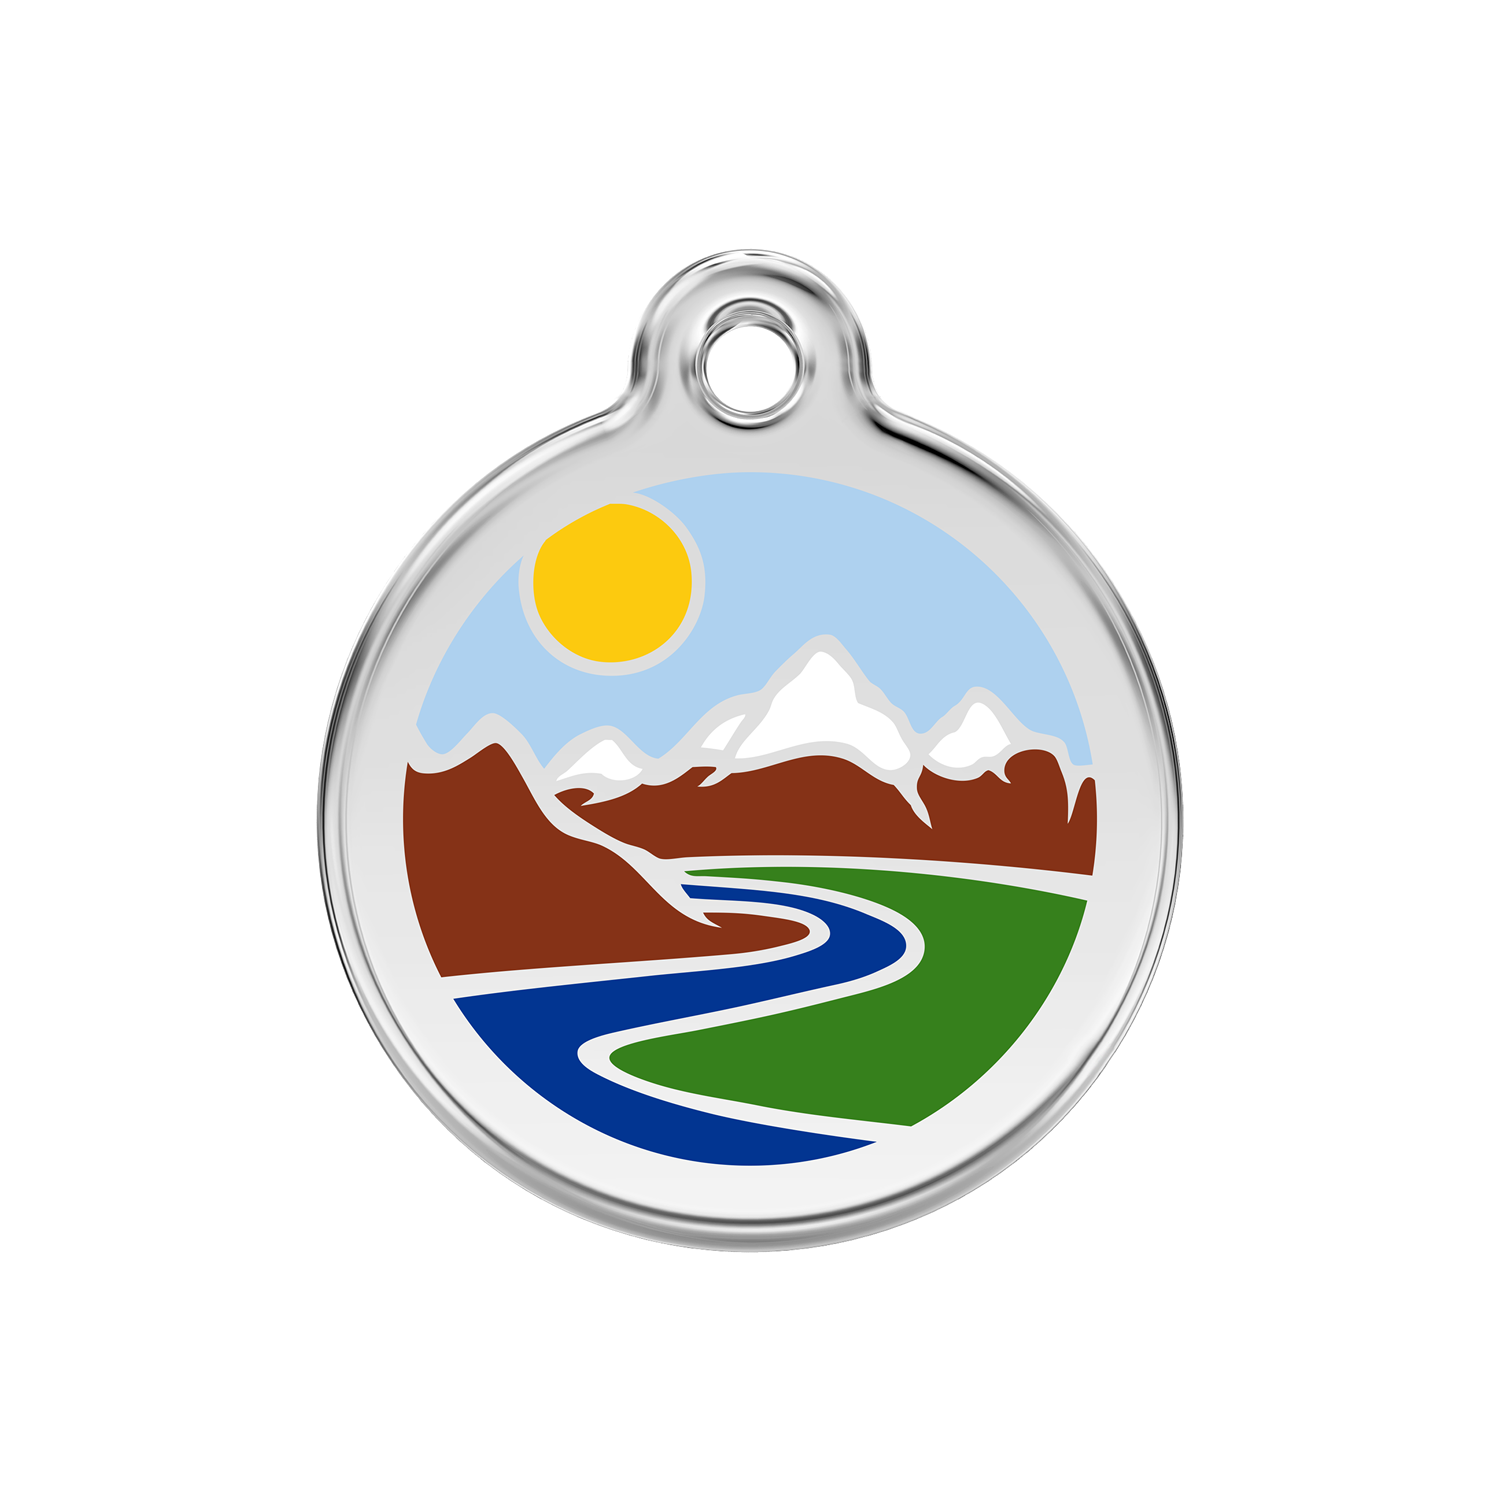 Light Blue Mountains Medium Enamel & Stainless Steel Tag>